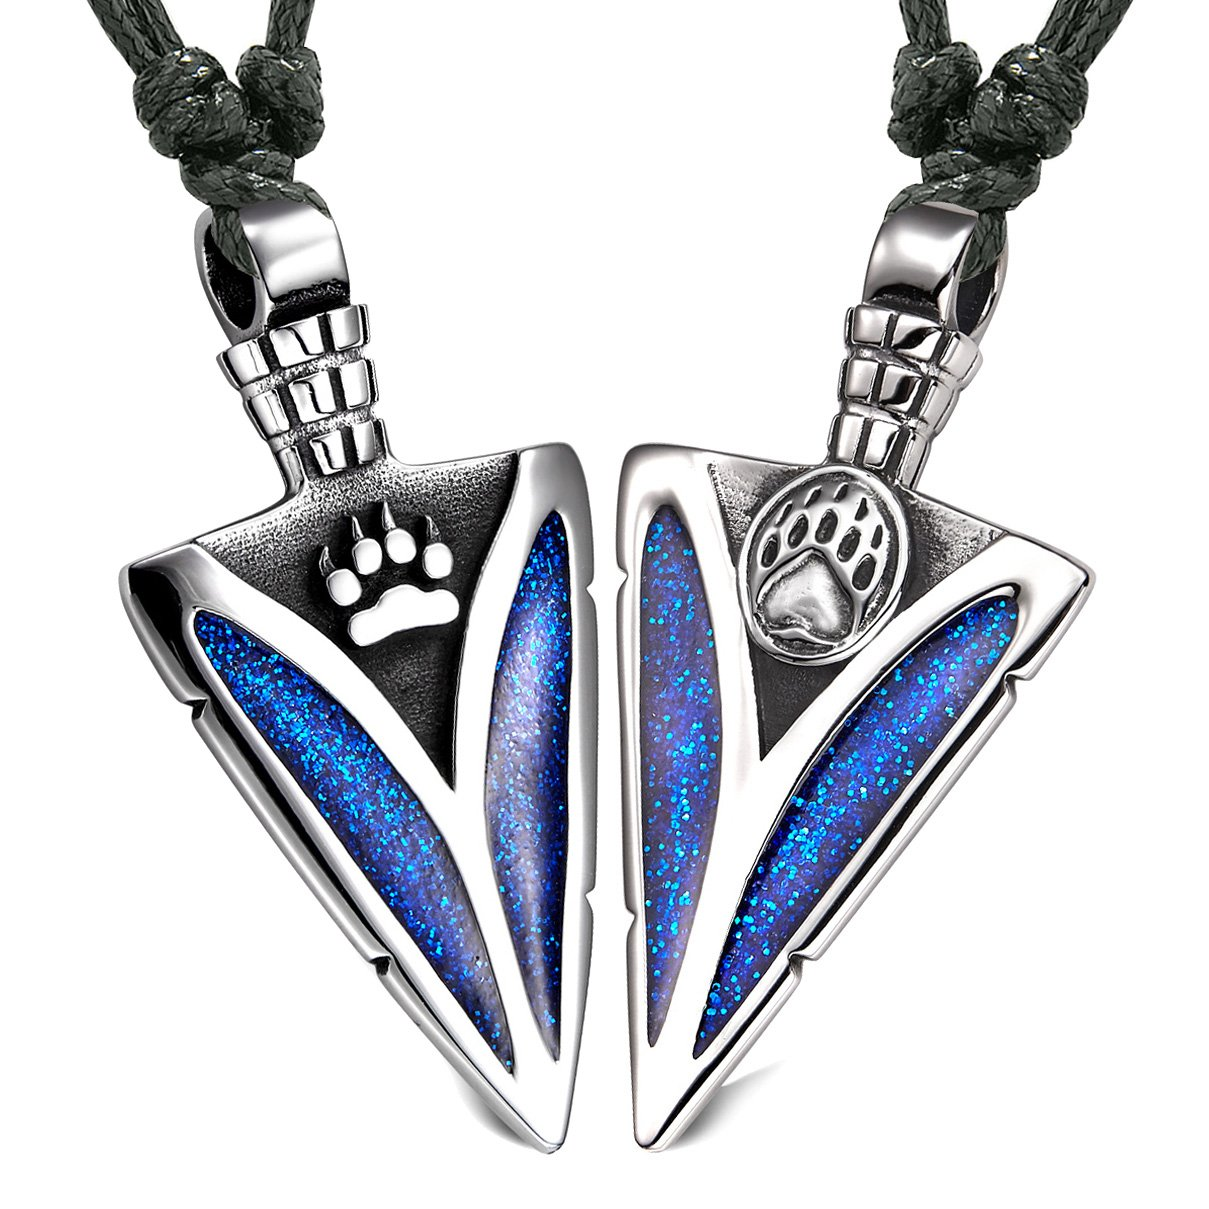 Arrowhead Wolf and Bear Paws Love Couples or BFF Set Amulets Sparkling Royal Blue Adjustable Necklaces